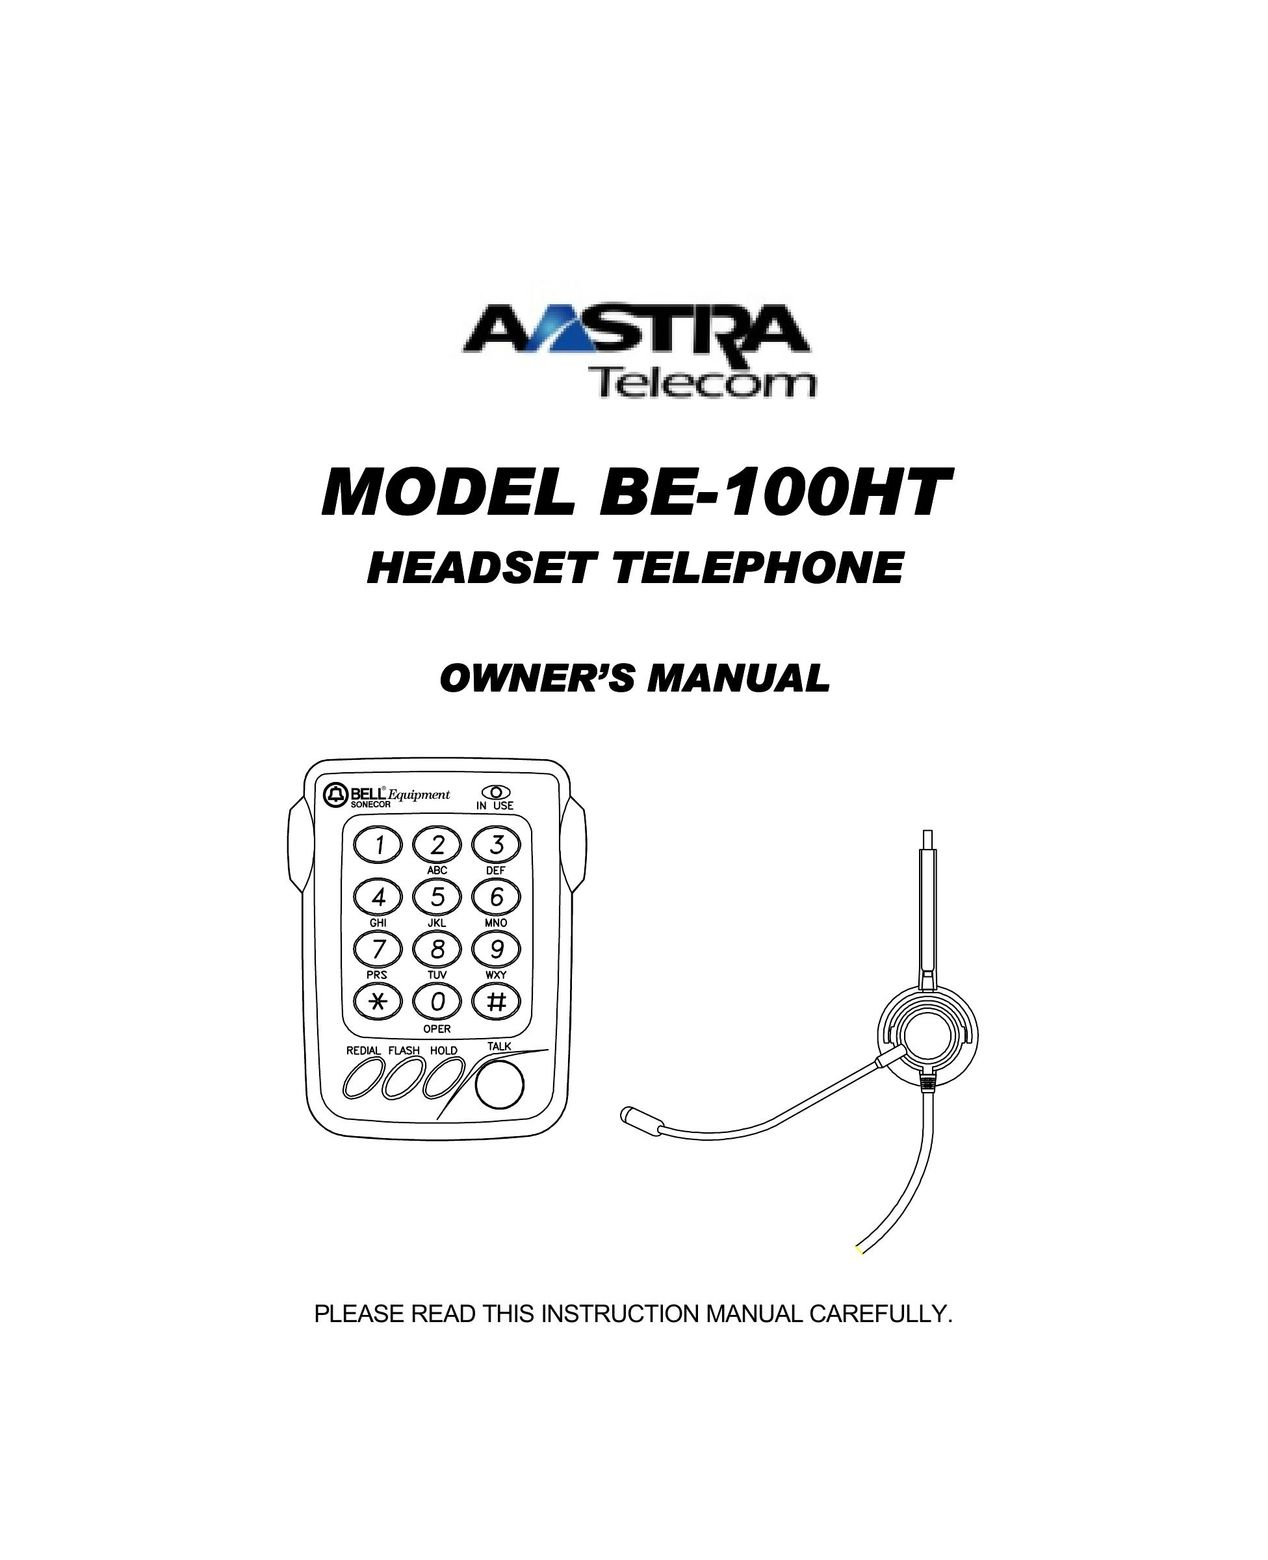 User manuals for Corded Headset